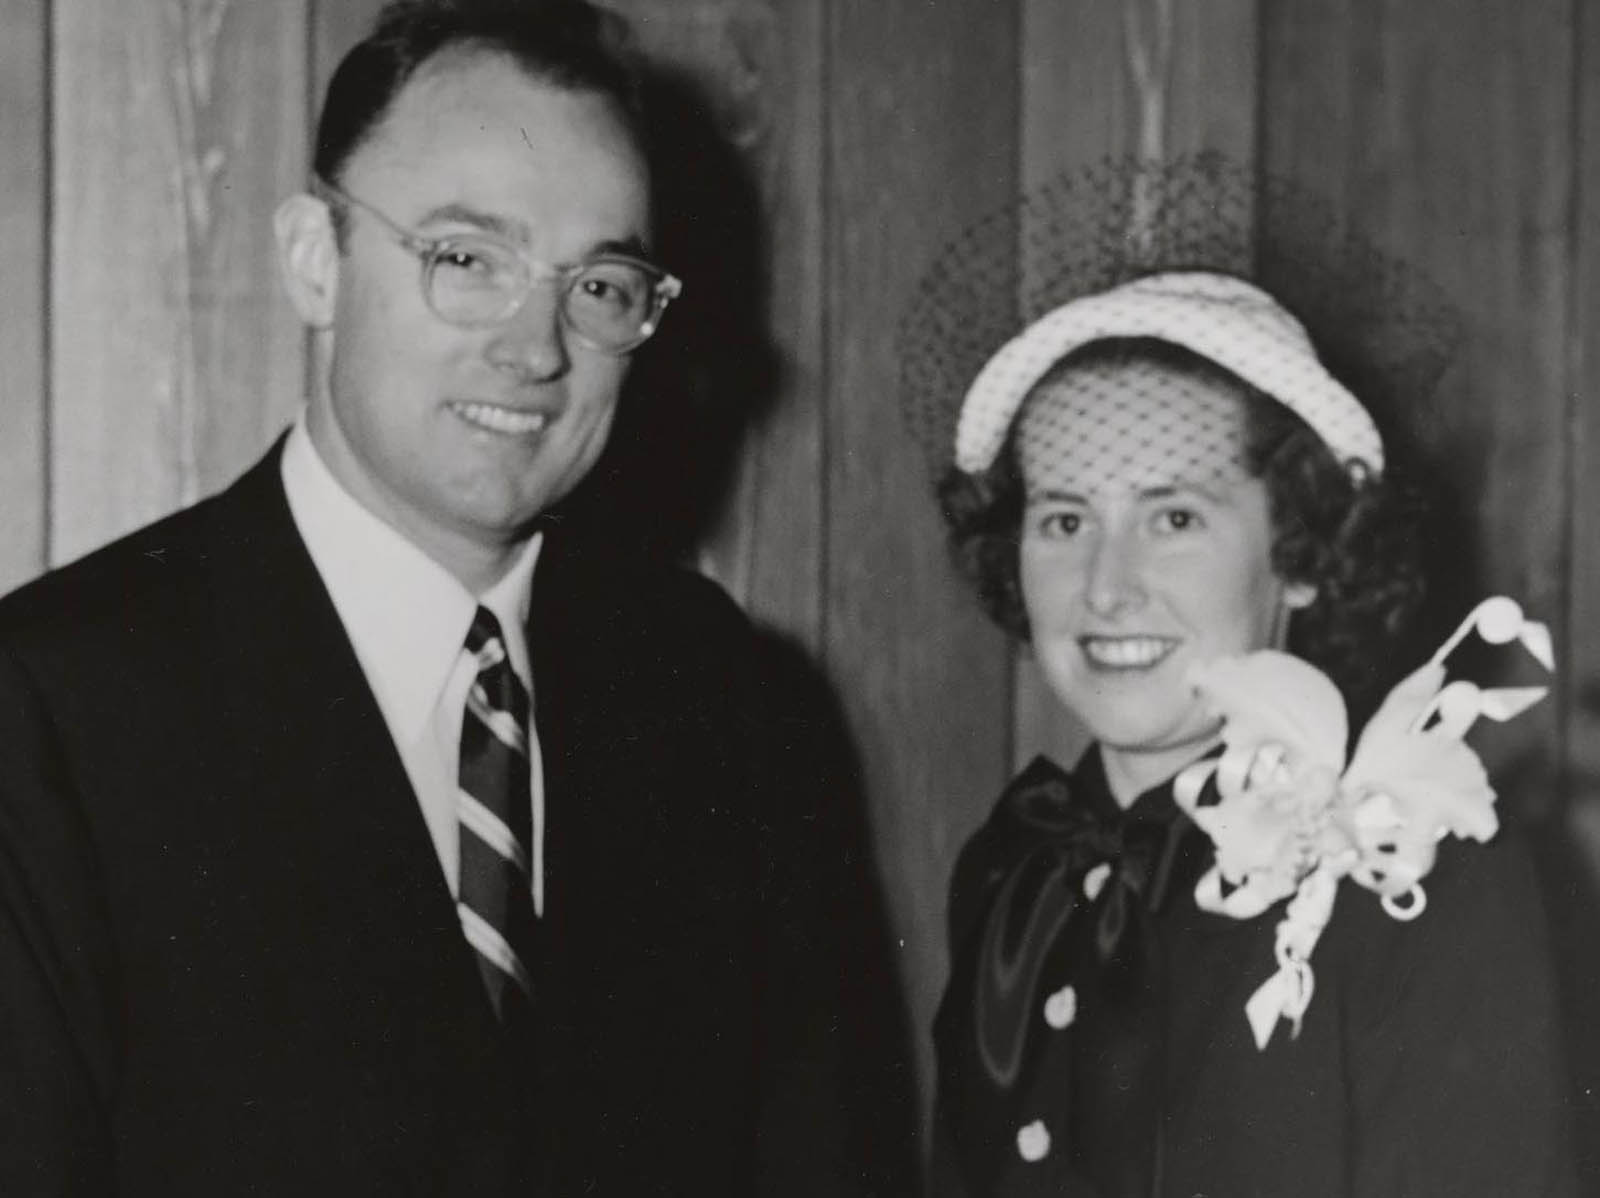 Bobbie with husband Henry J. Kaiser, Jr., son of industrialist and co-founder of Kaiser Permanente Henry J. Kaiser, Sr., circa 1960.